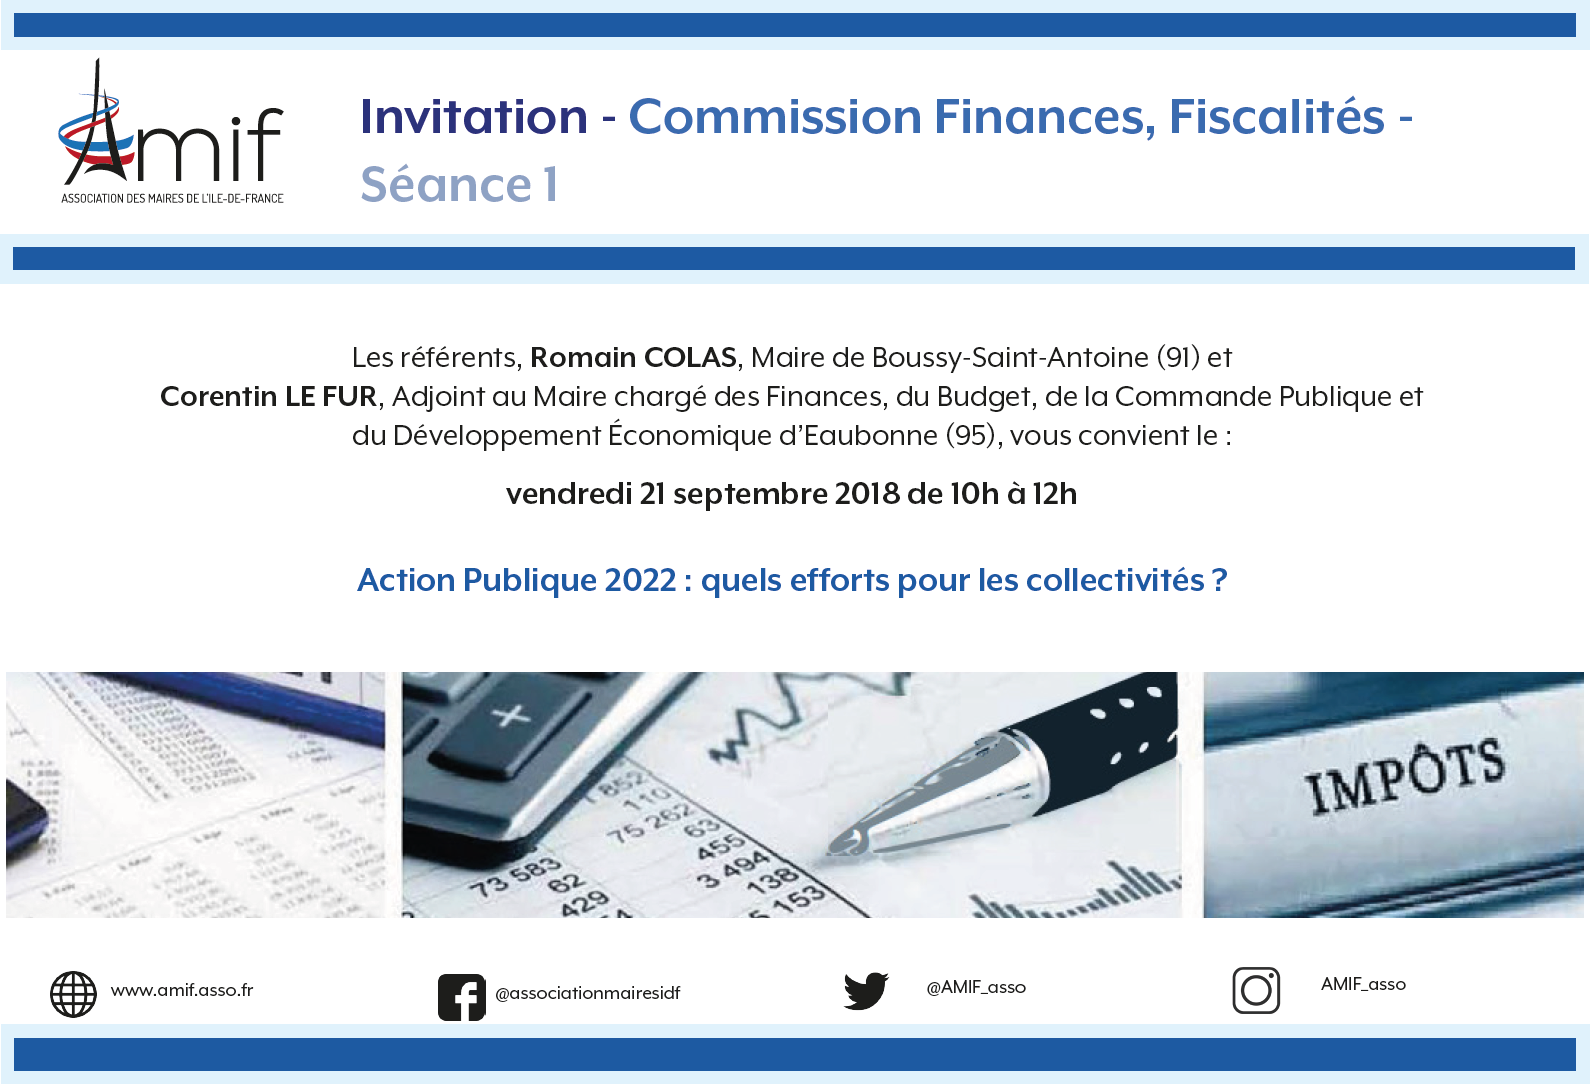 CommissionFinancesFiscalitesSeance121septembre2018v2